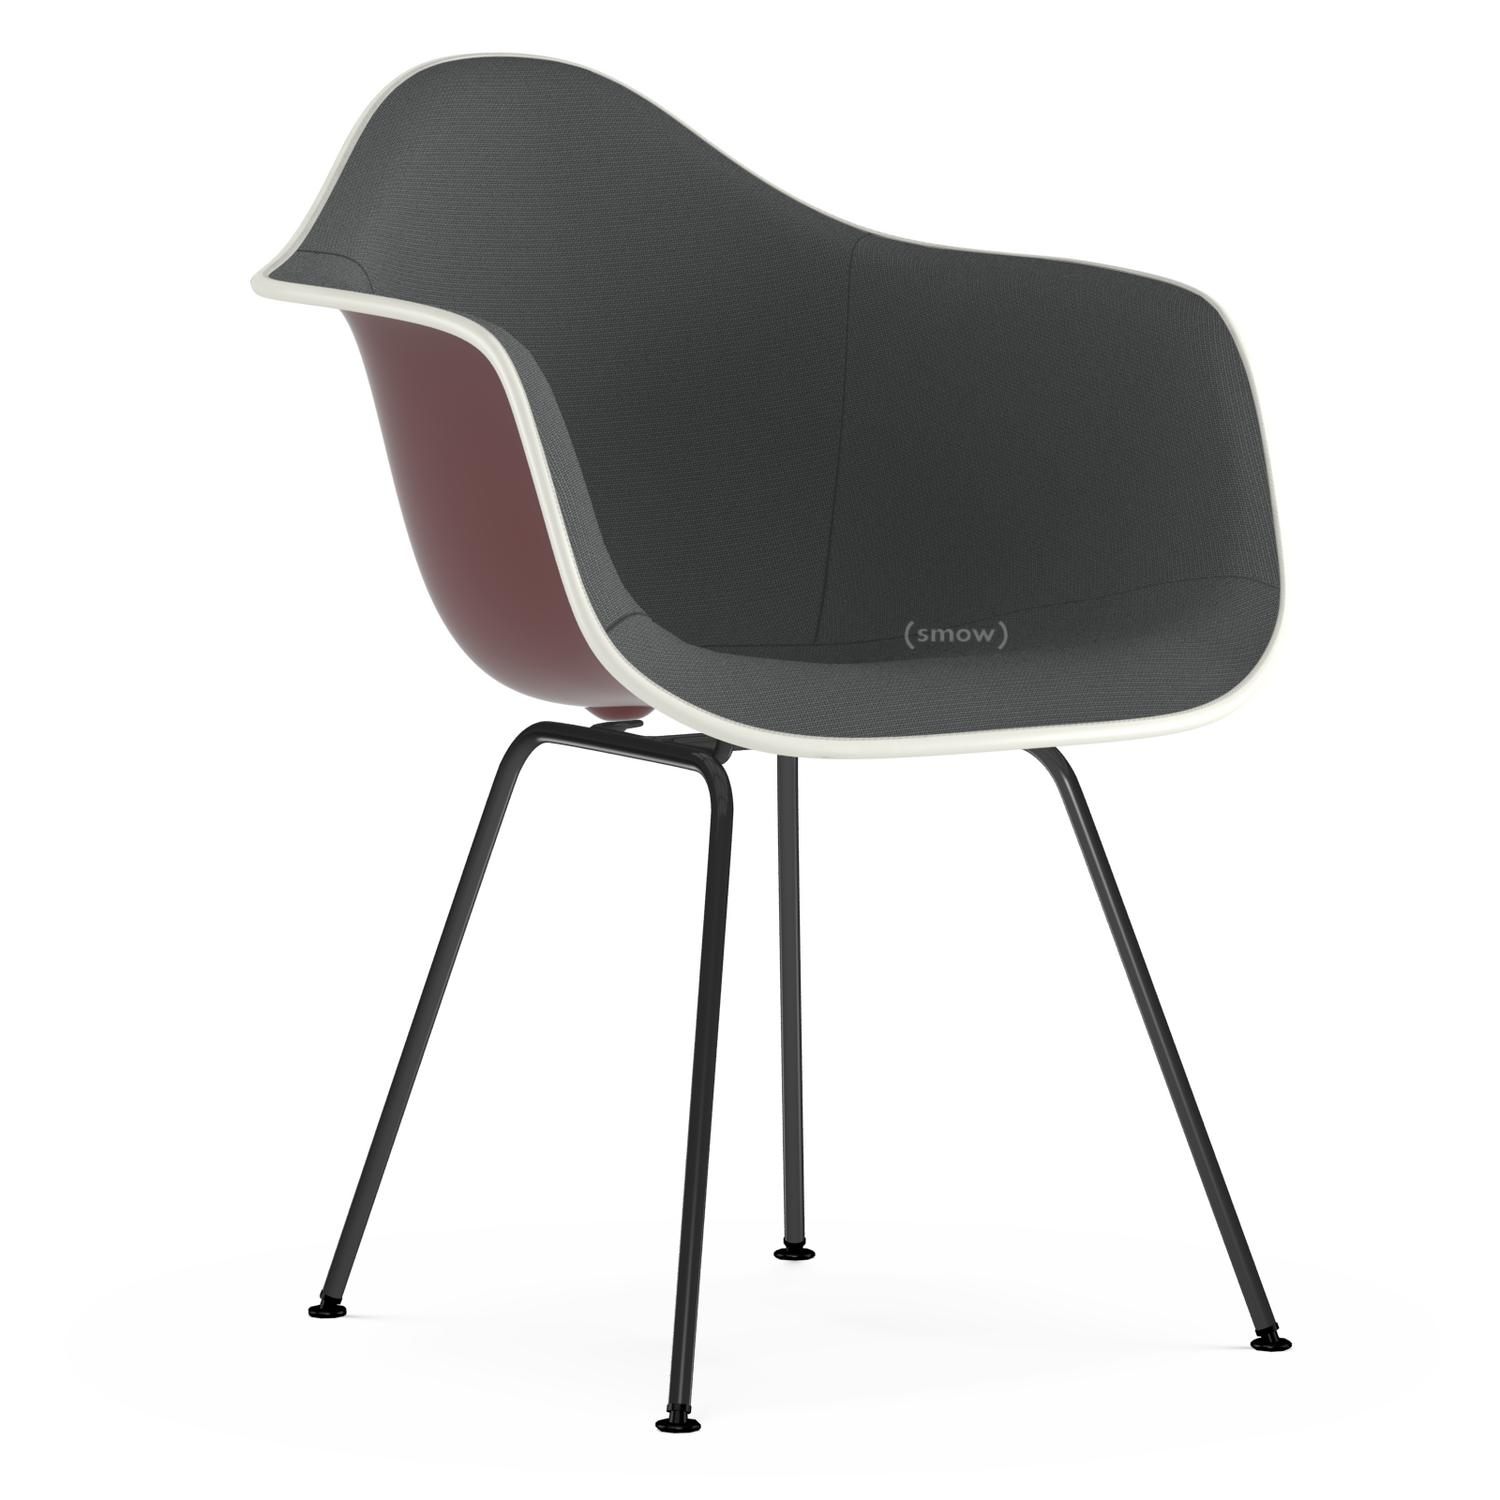 Eames Plastic Armchair DAX Oxide Red|With Full Upholstery|Dark  Grey|Standard Version